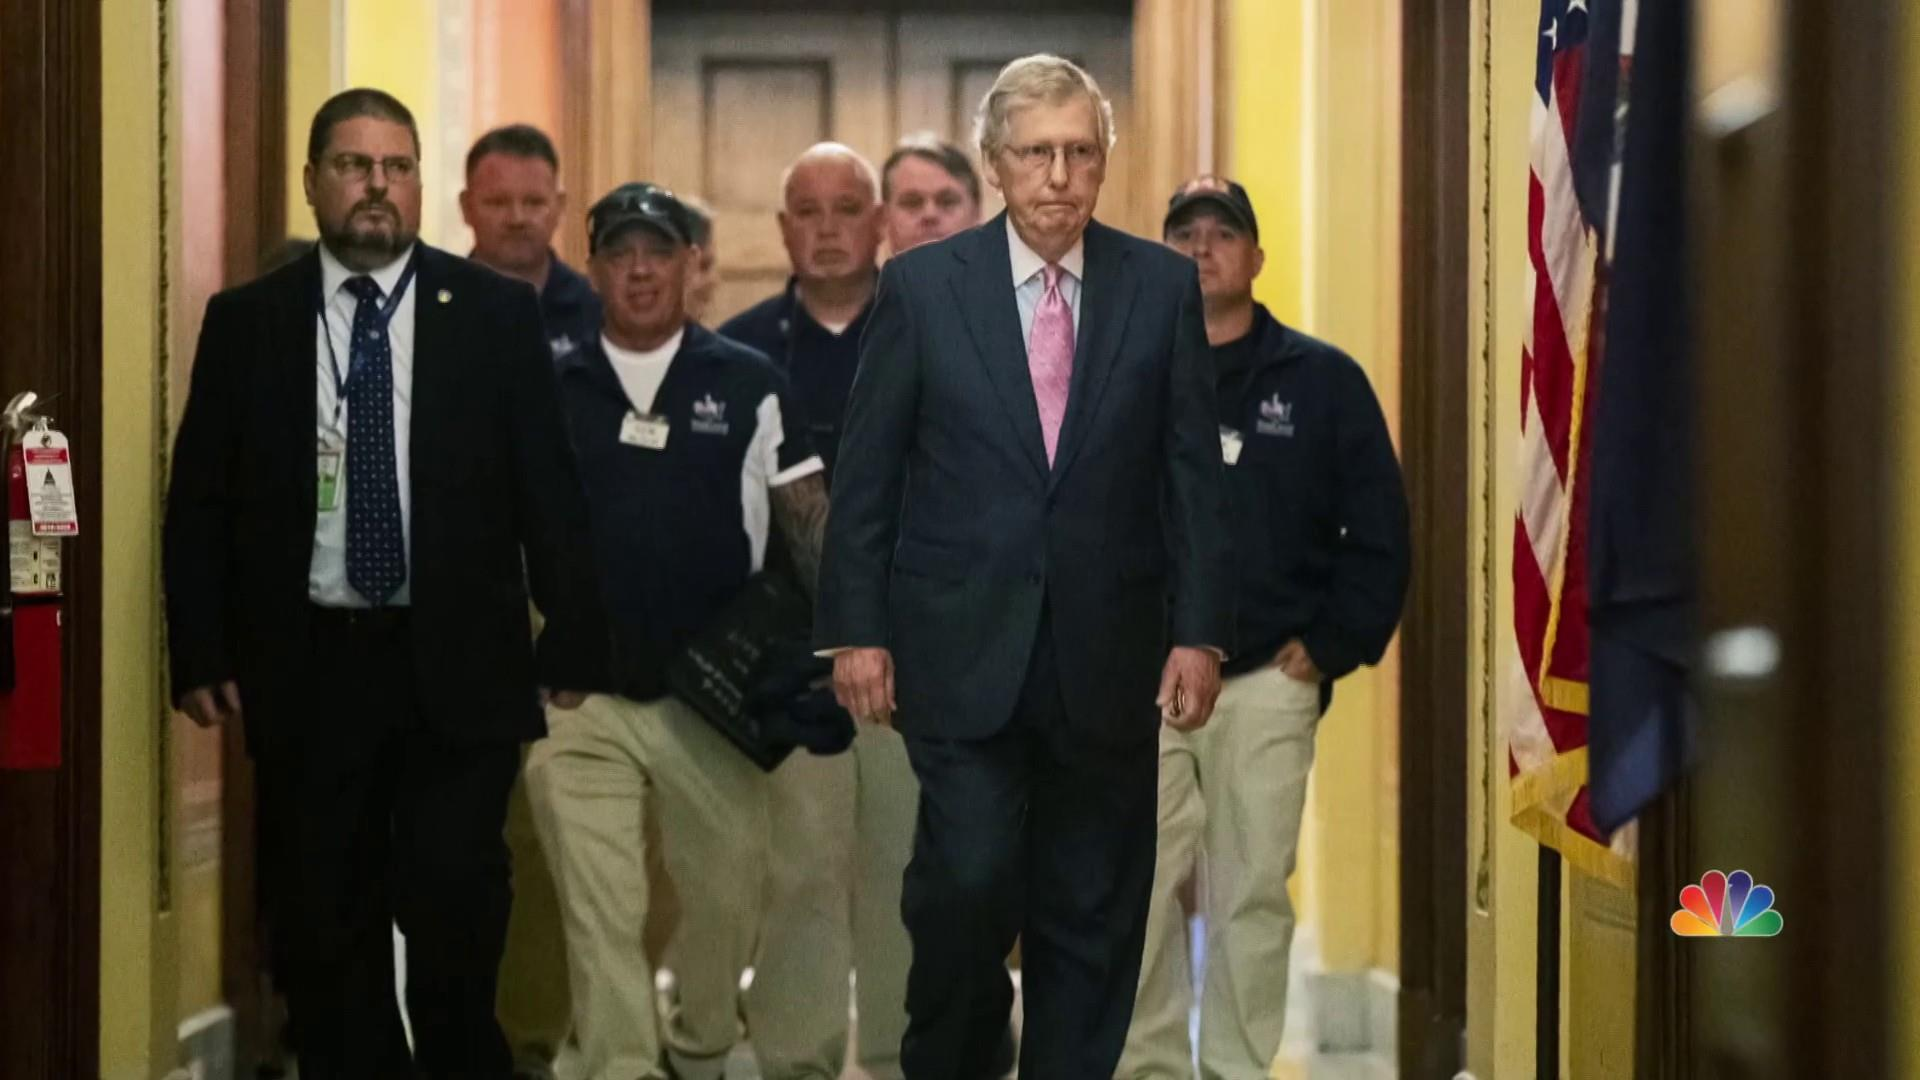 McConnell meets 9/11 first responders after public feud with Jon Stewart